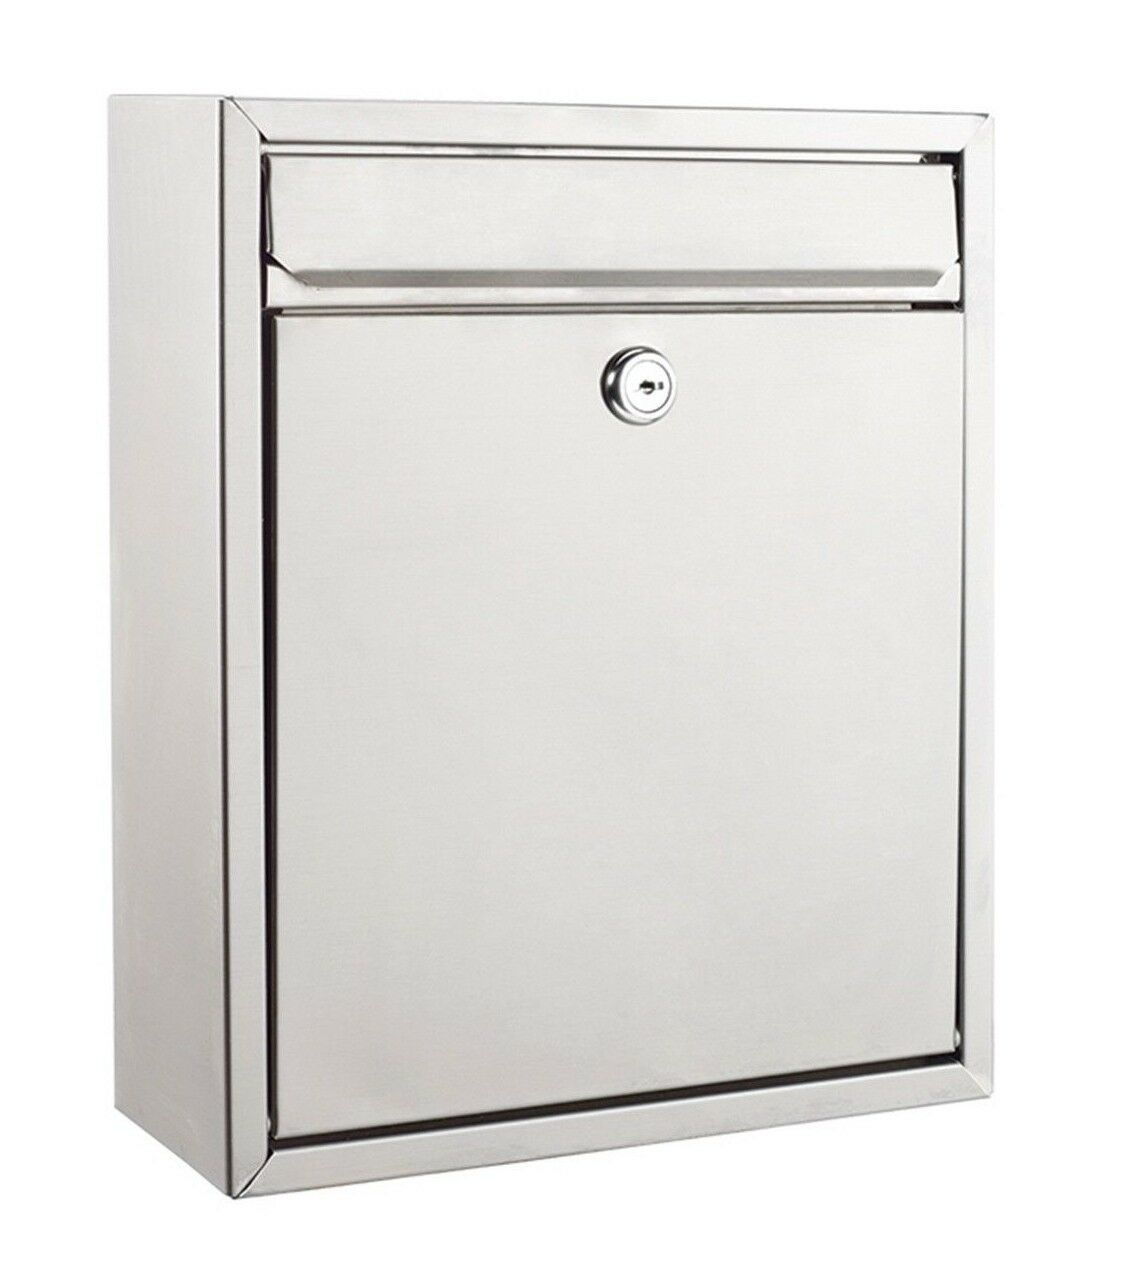 Sandleford NAPOLI WALL MOUNT LETTERBOX A4 260x310mm Stainless Steel Aust Brand